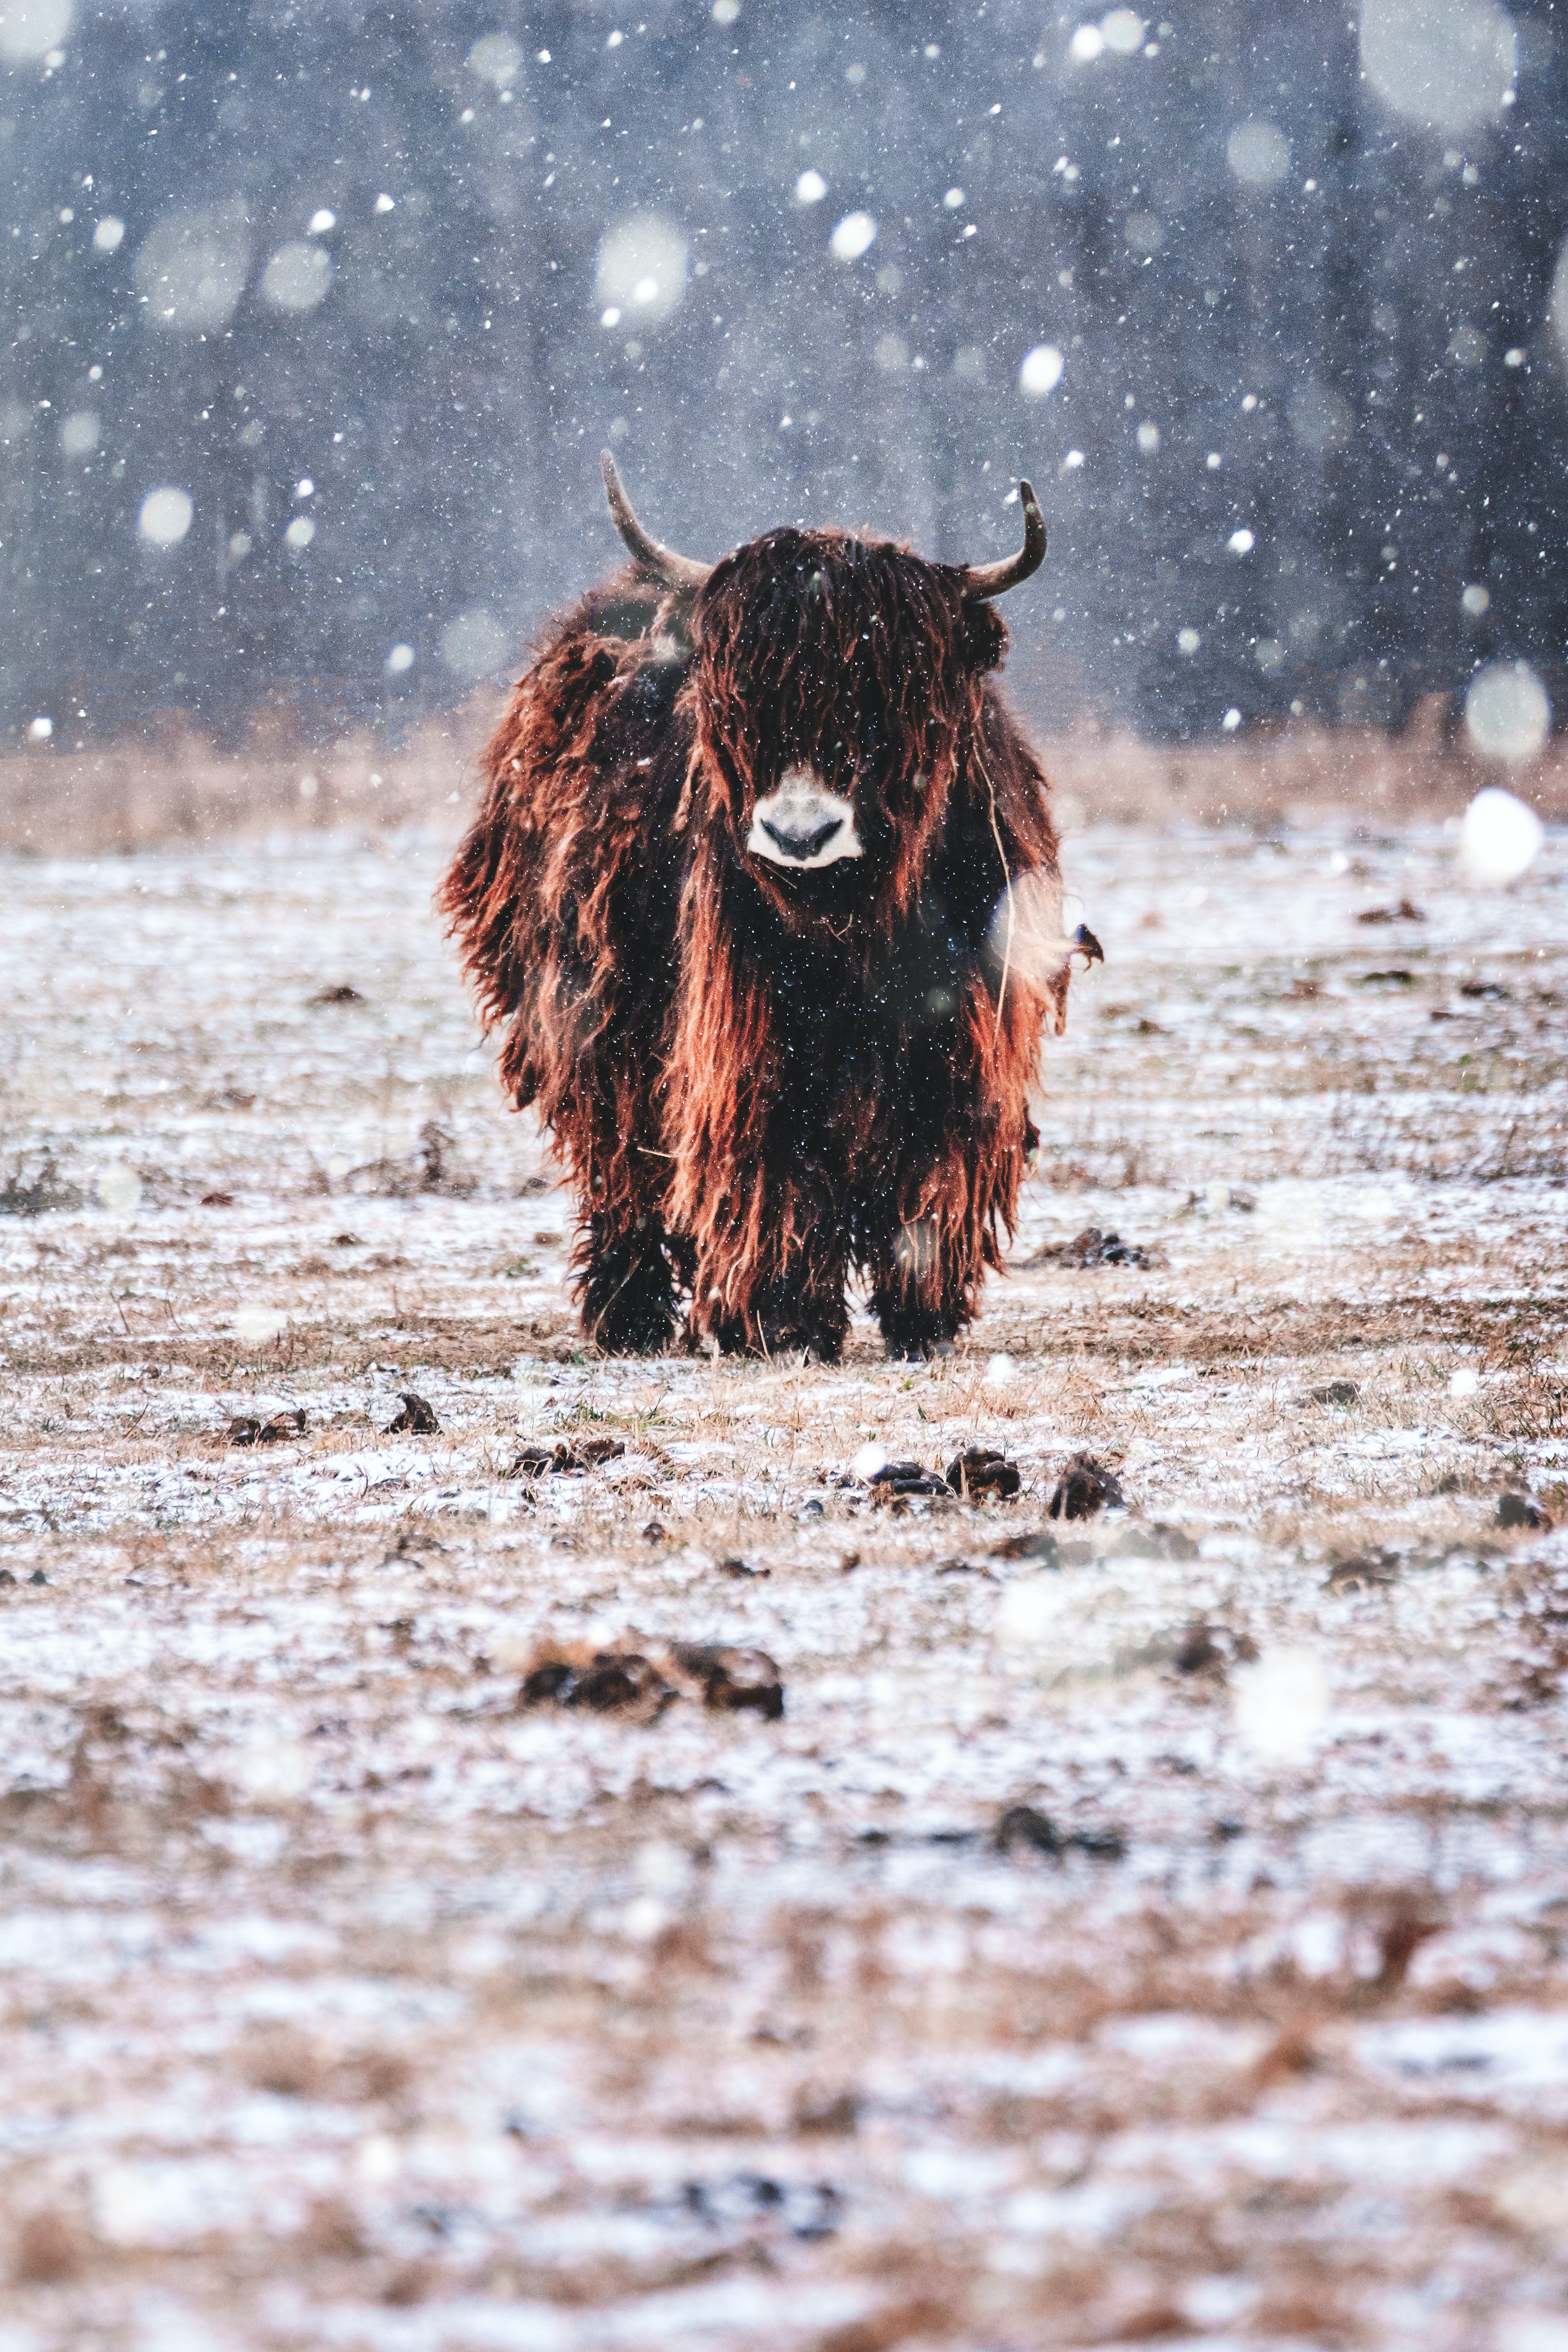 A bison walking in the snow towards you.